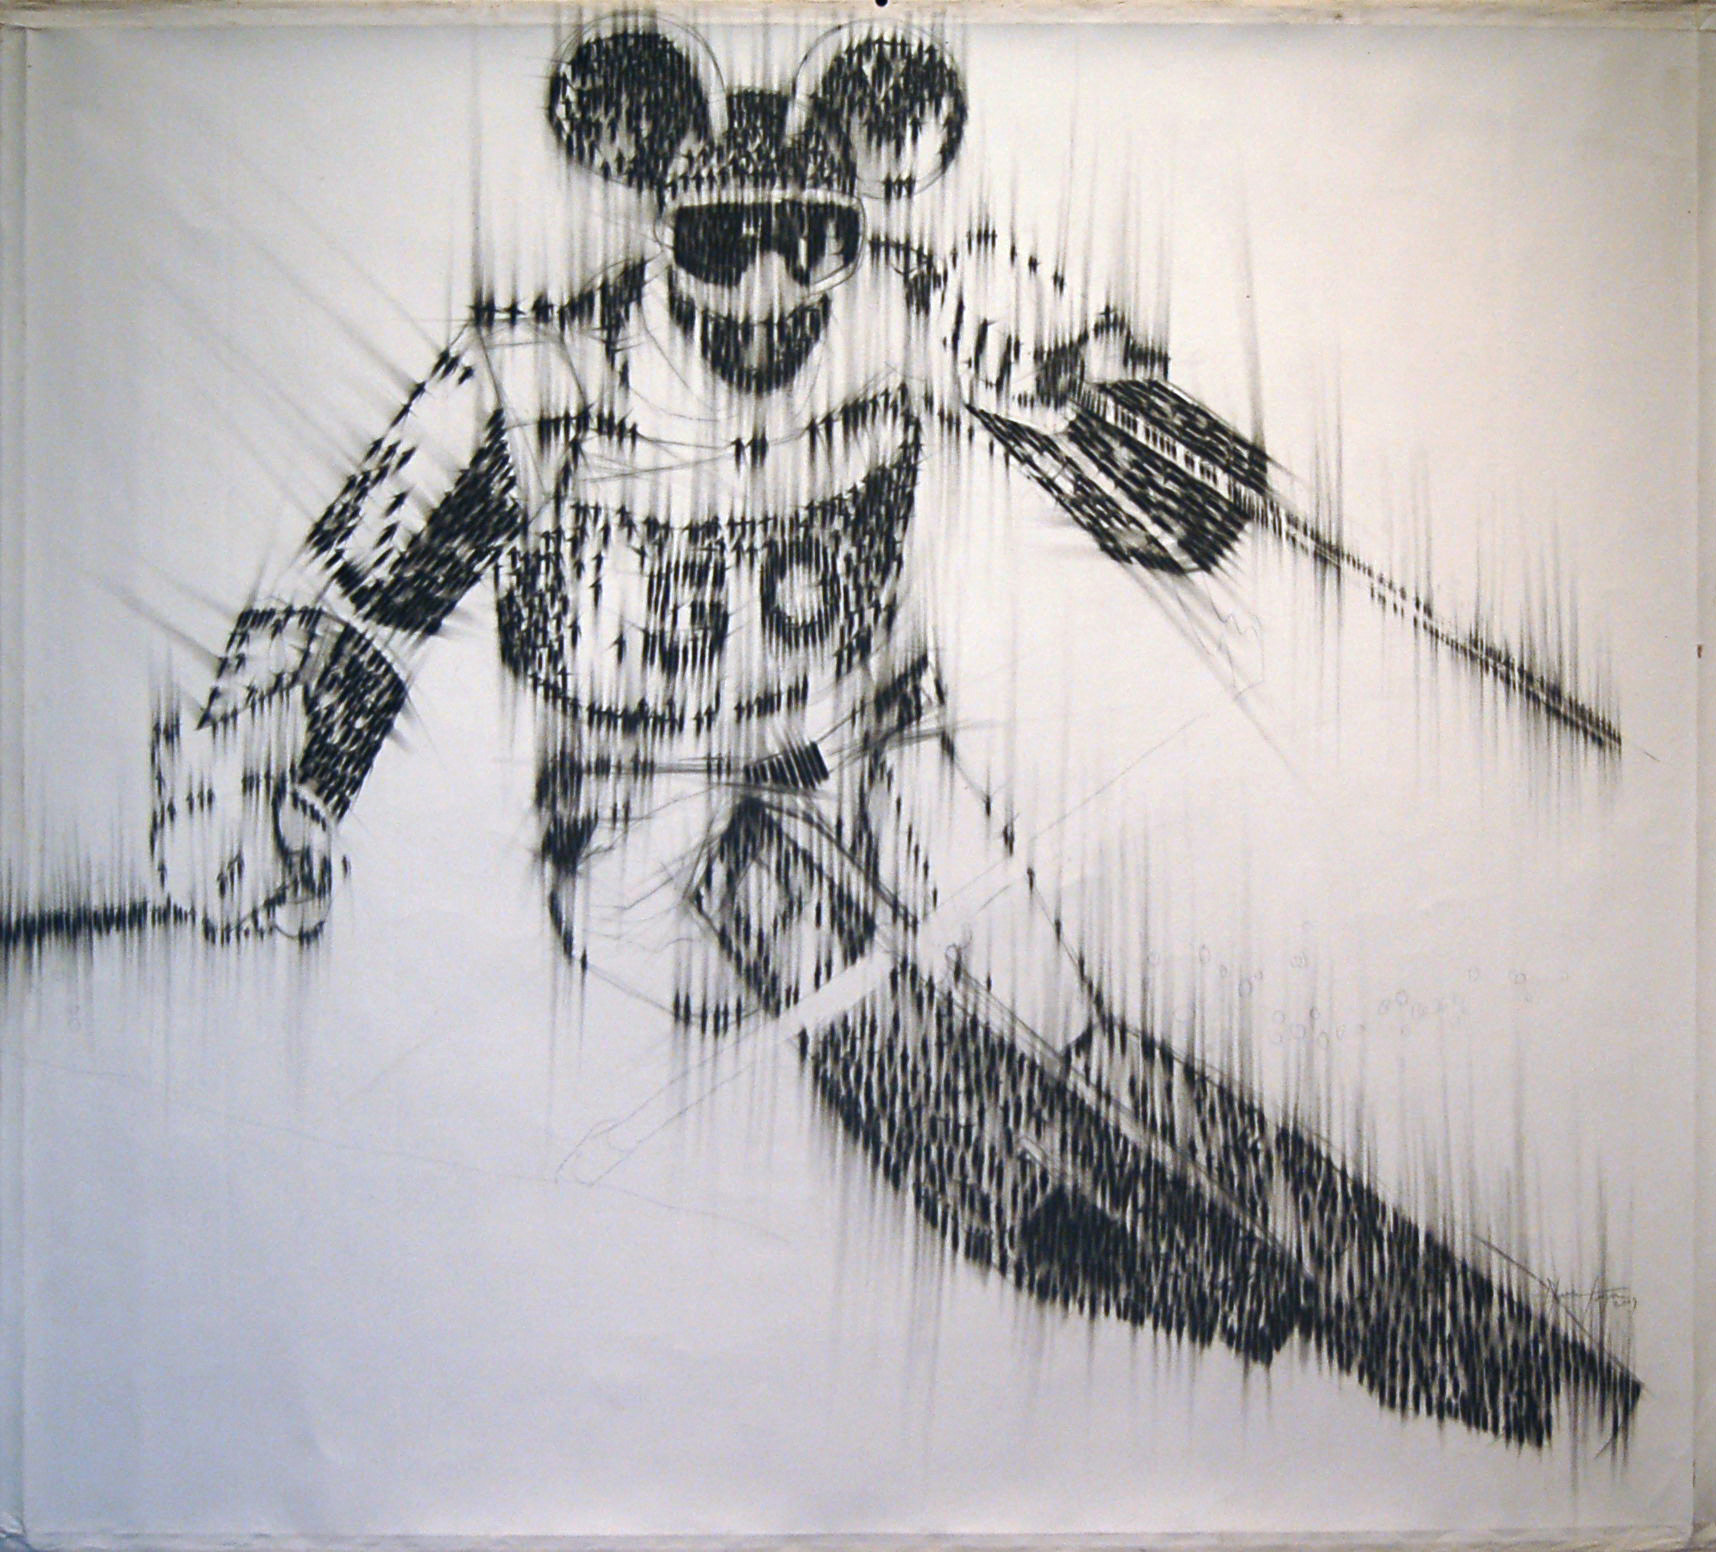 Cuban Ski Champion, Charcoal pencil on canvas, 150cm x 135cm